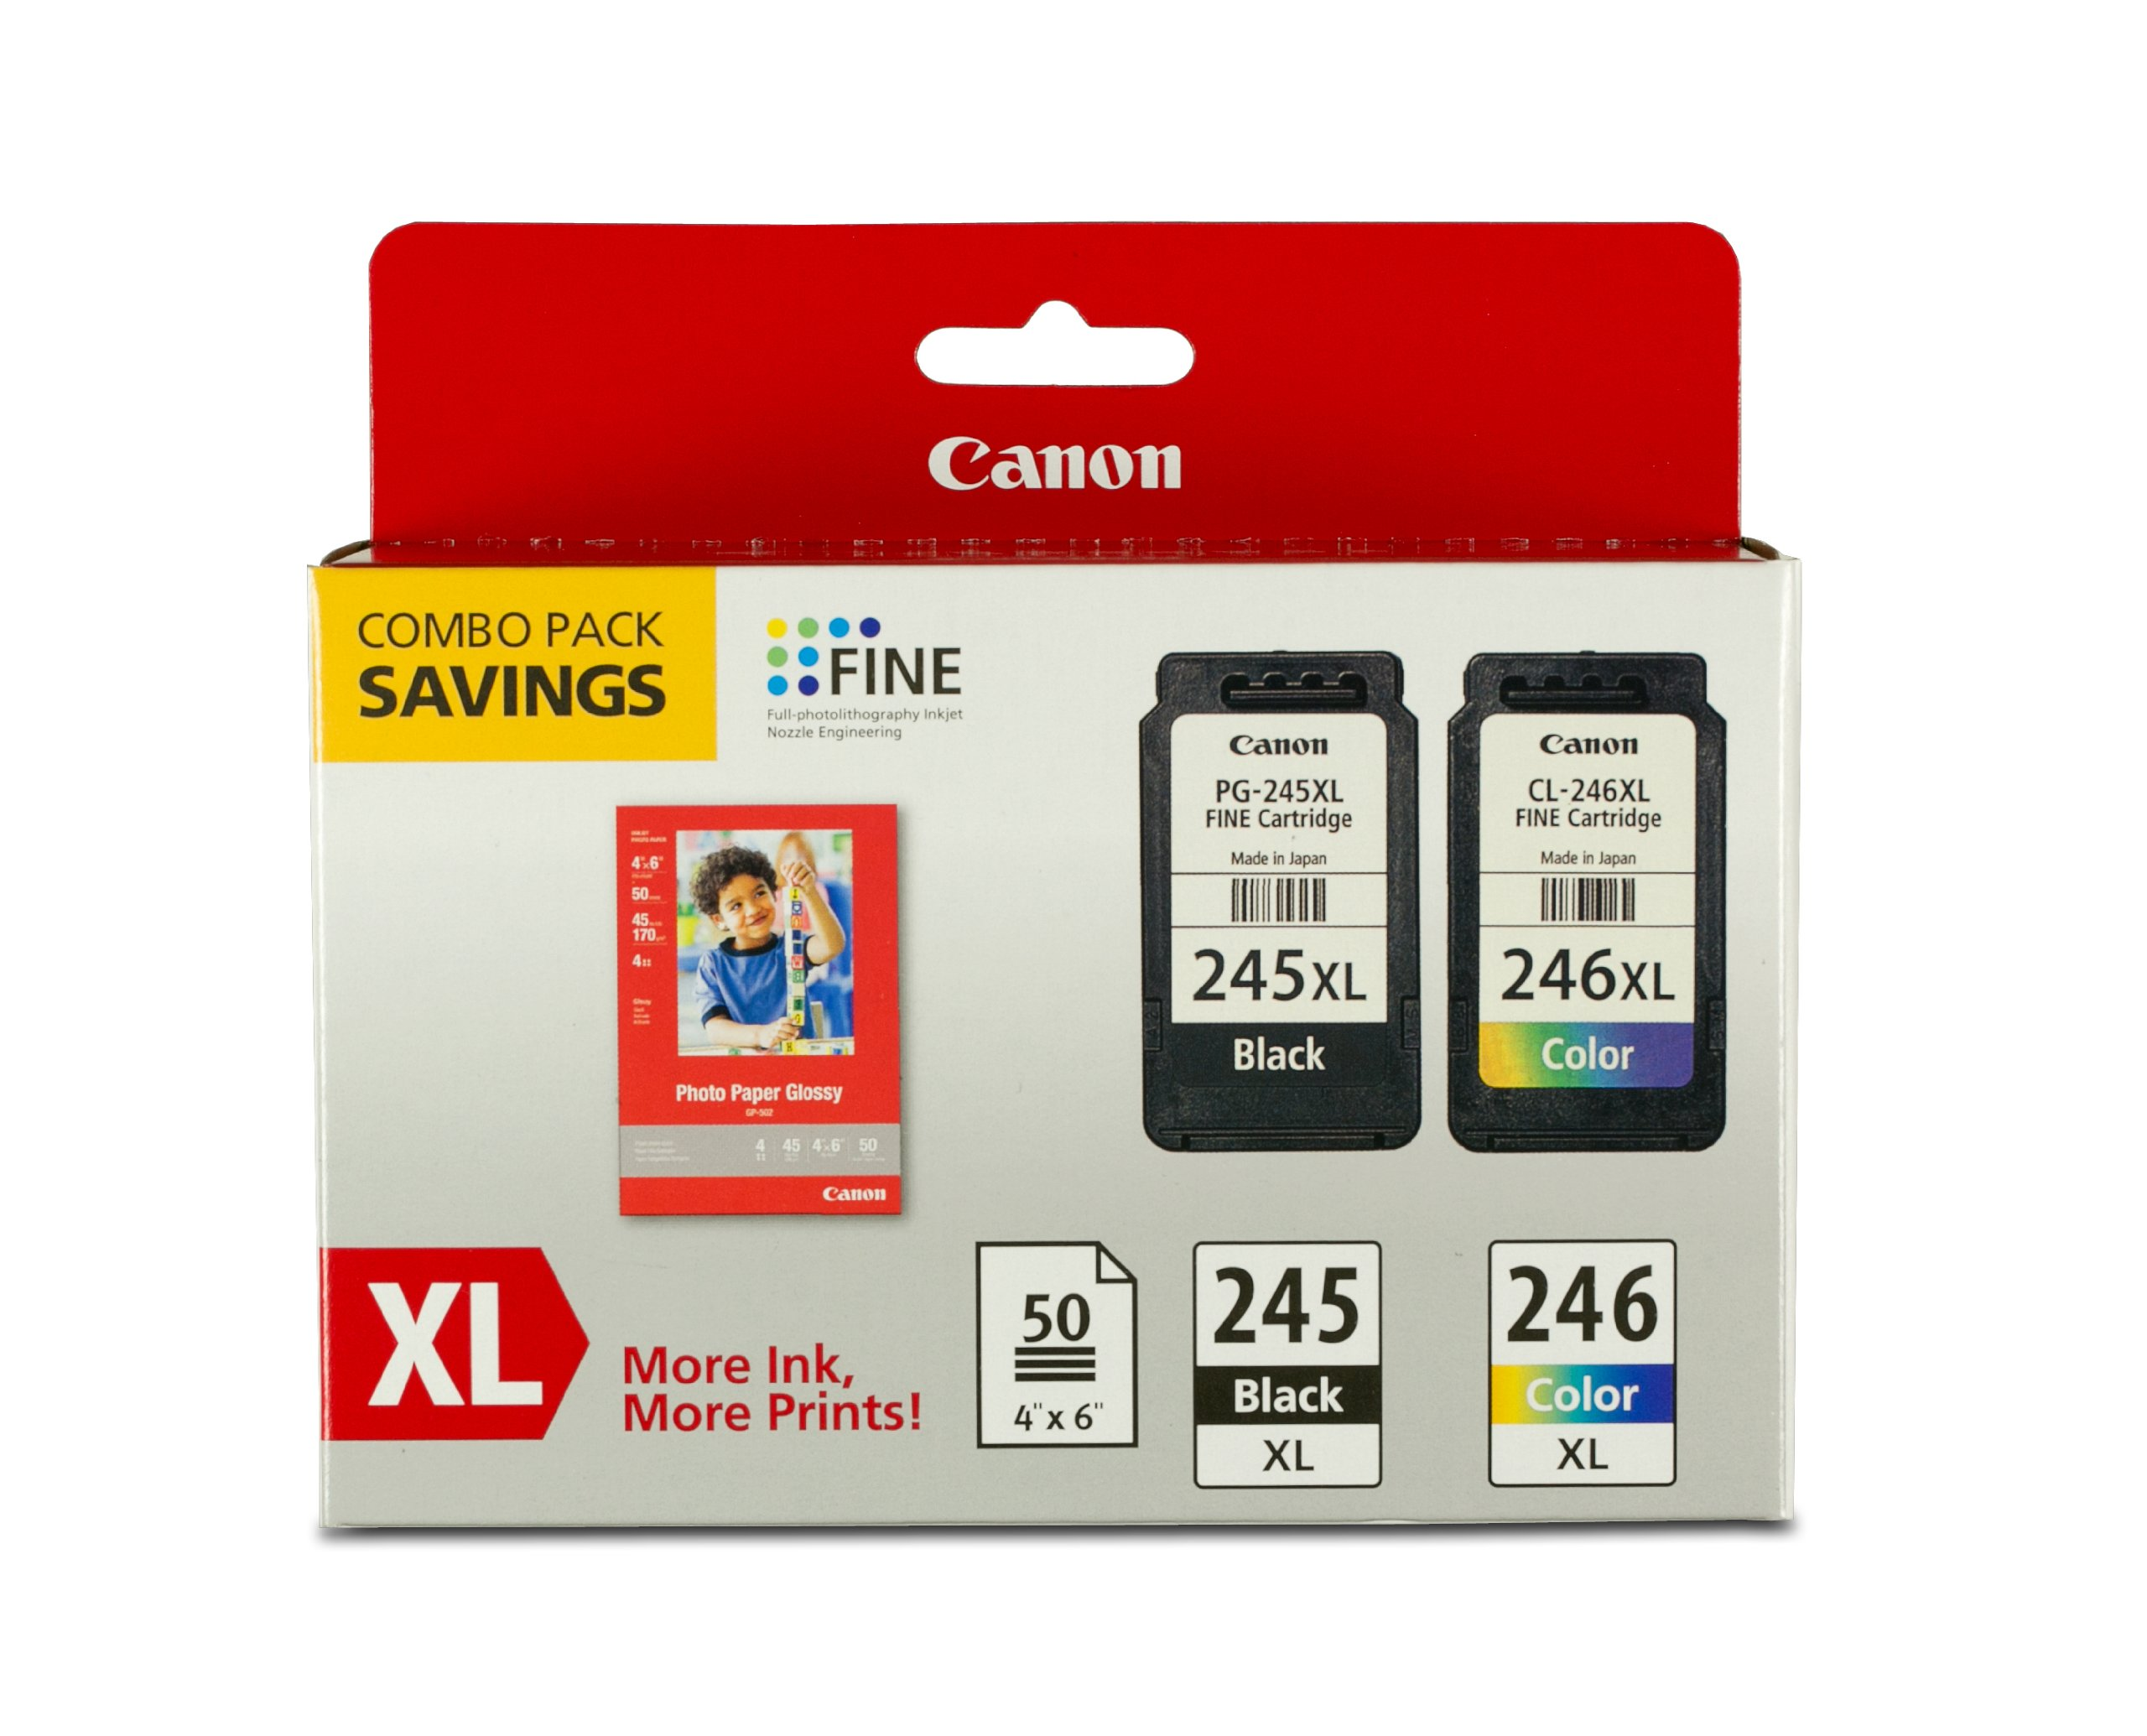 Canon PG-245XL/CL-246XL Ink and Photo Paper Glossy Combo Pack, Compatible to MX492, MG3020,MG2920,MG2924,iP2820,MG2525 and MG2420 by Canon